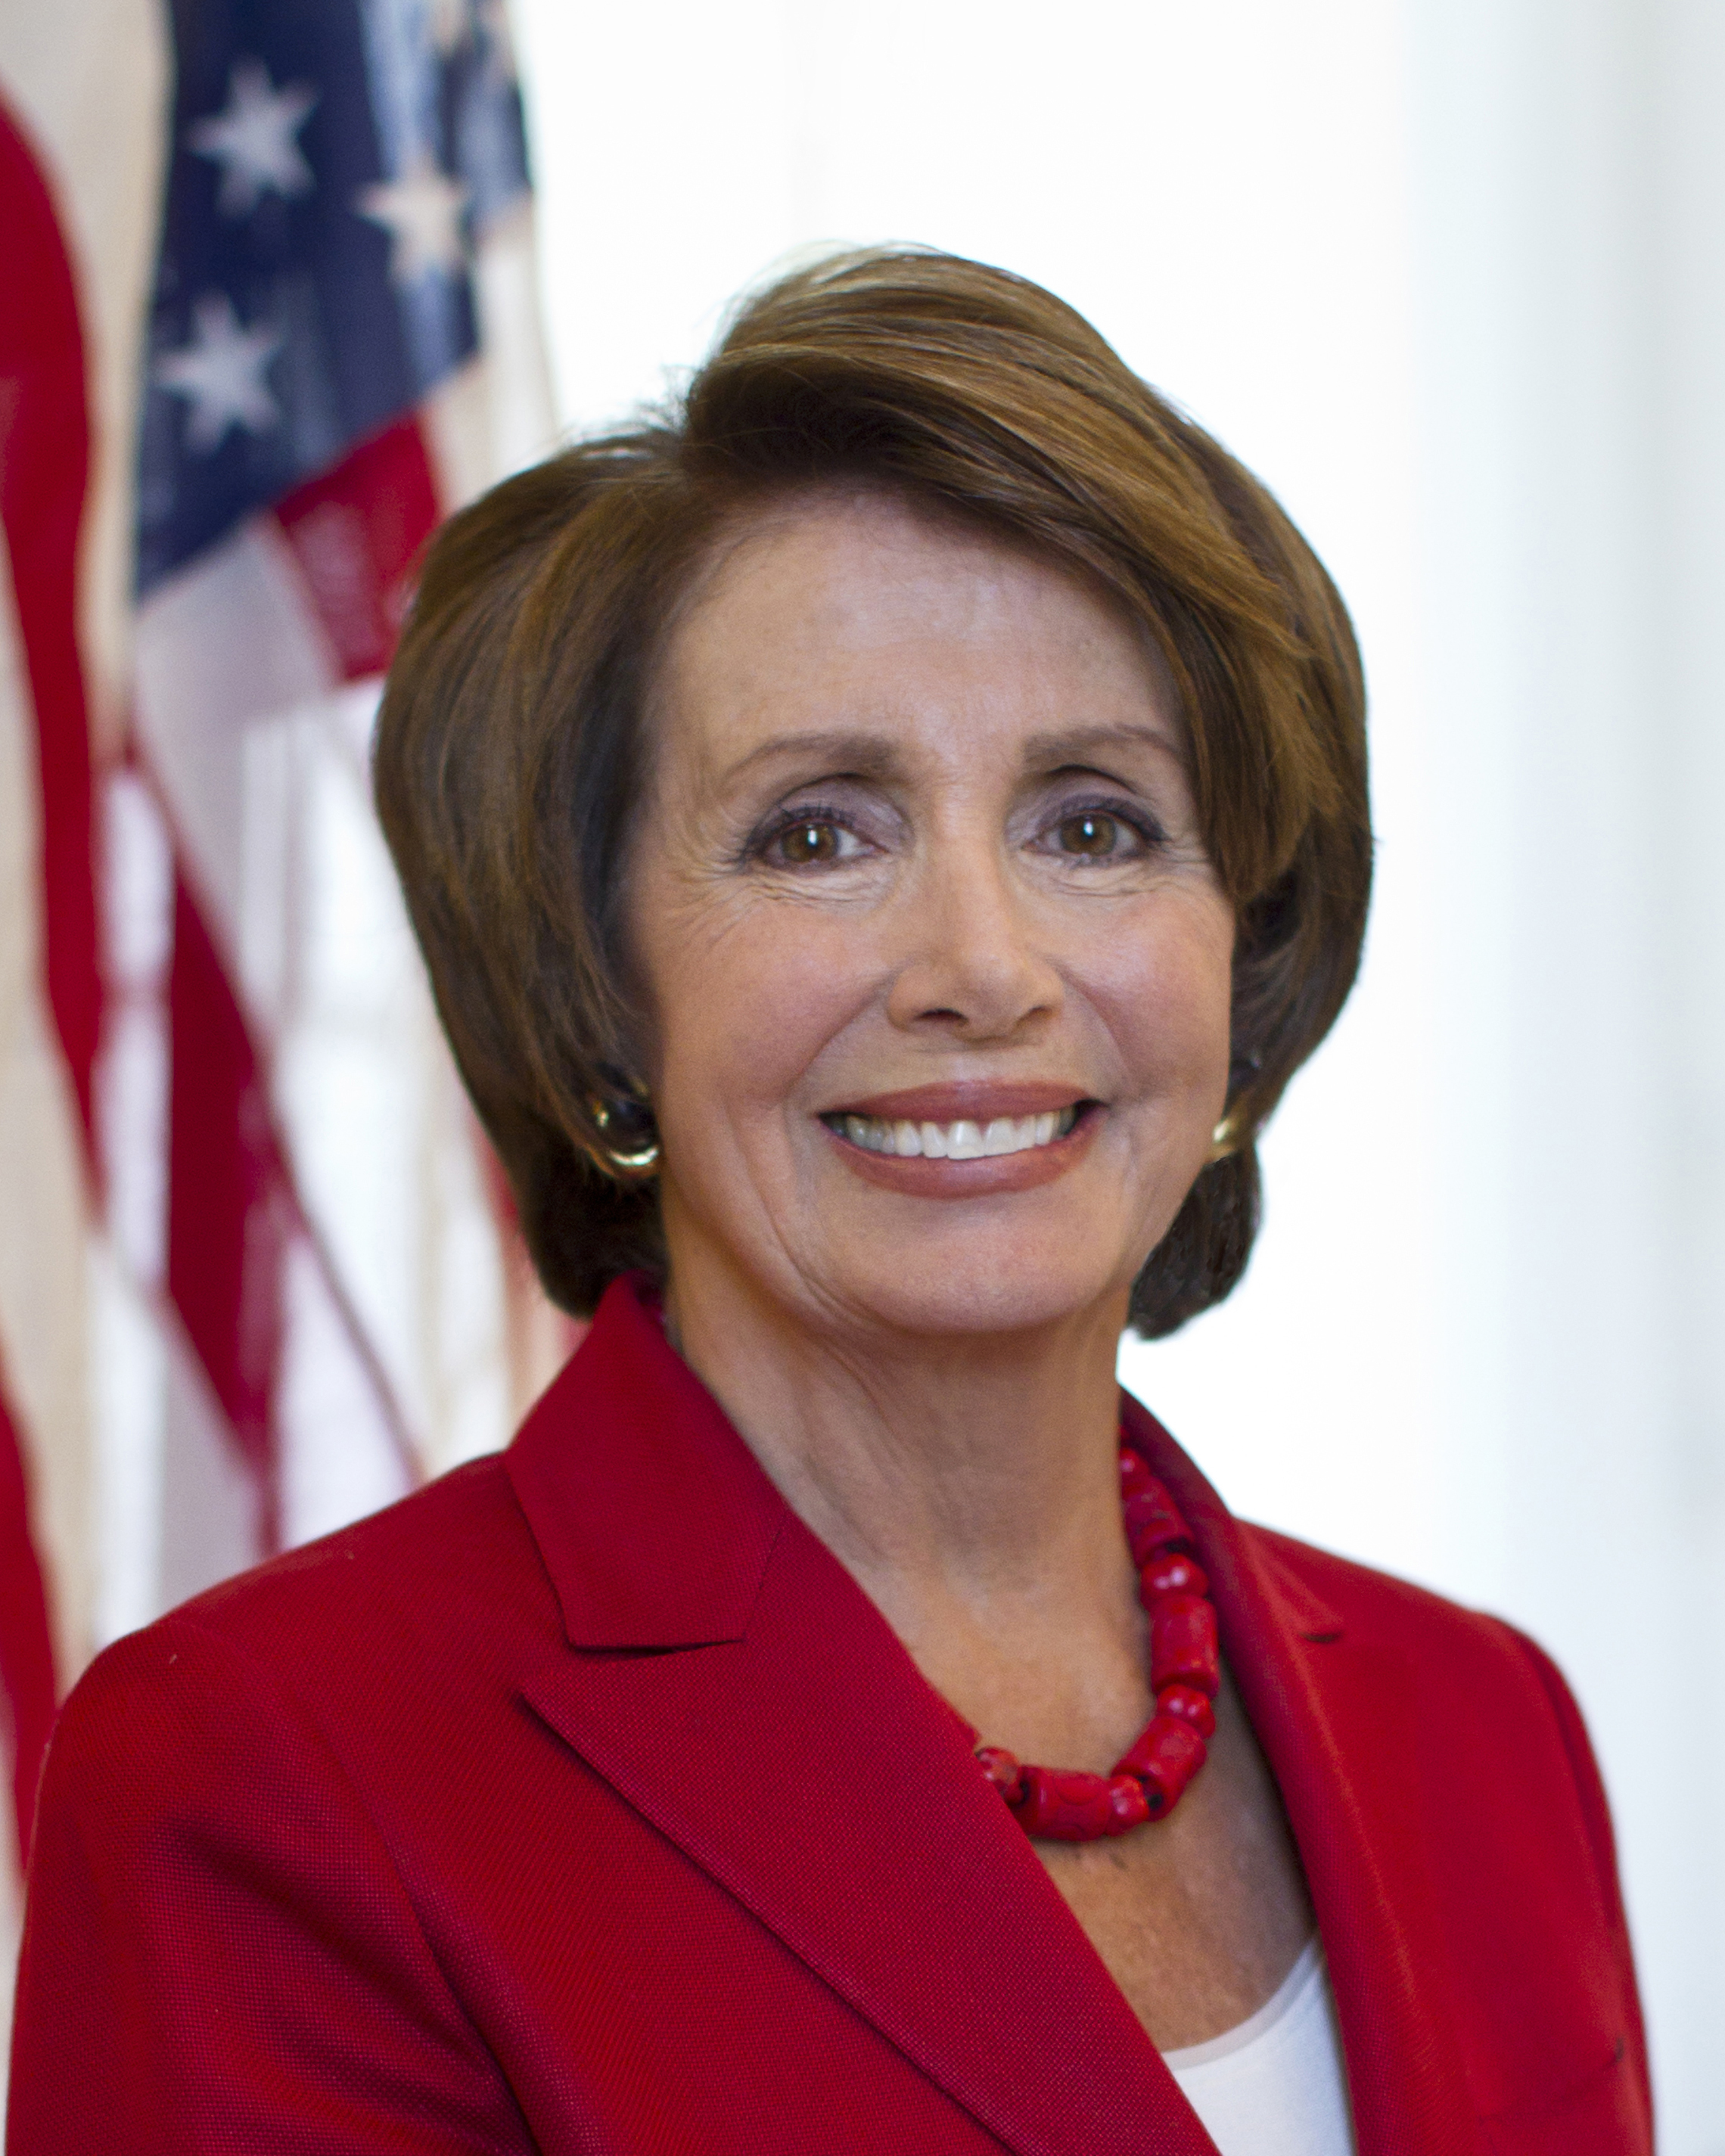 [Image: Nancy_Pelosi_2012.jpg]